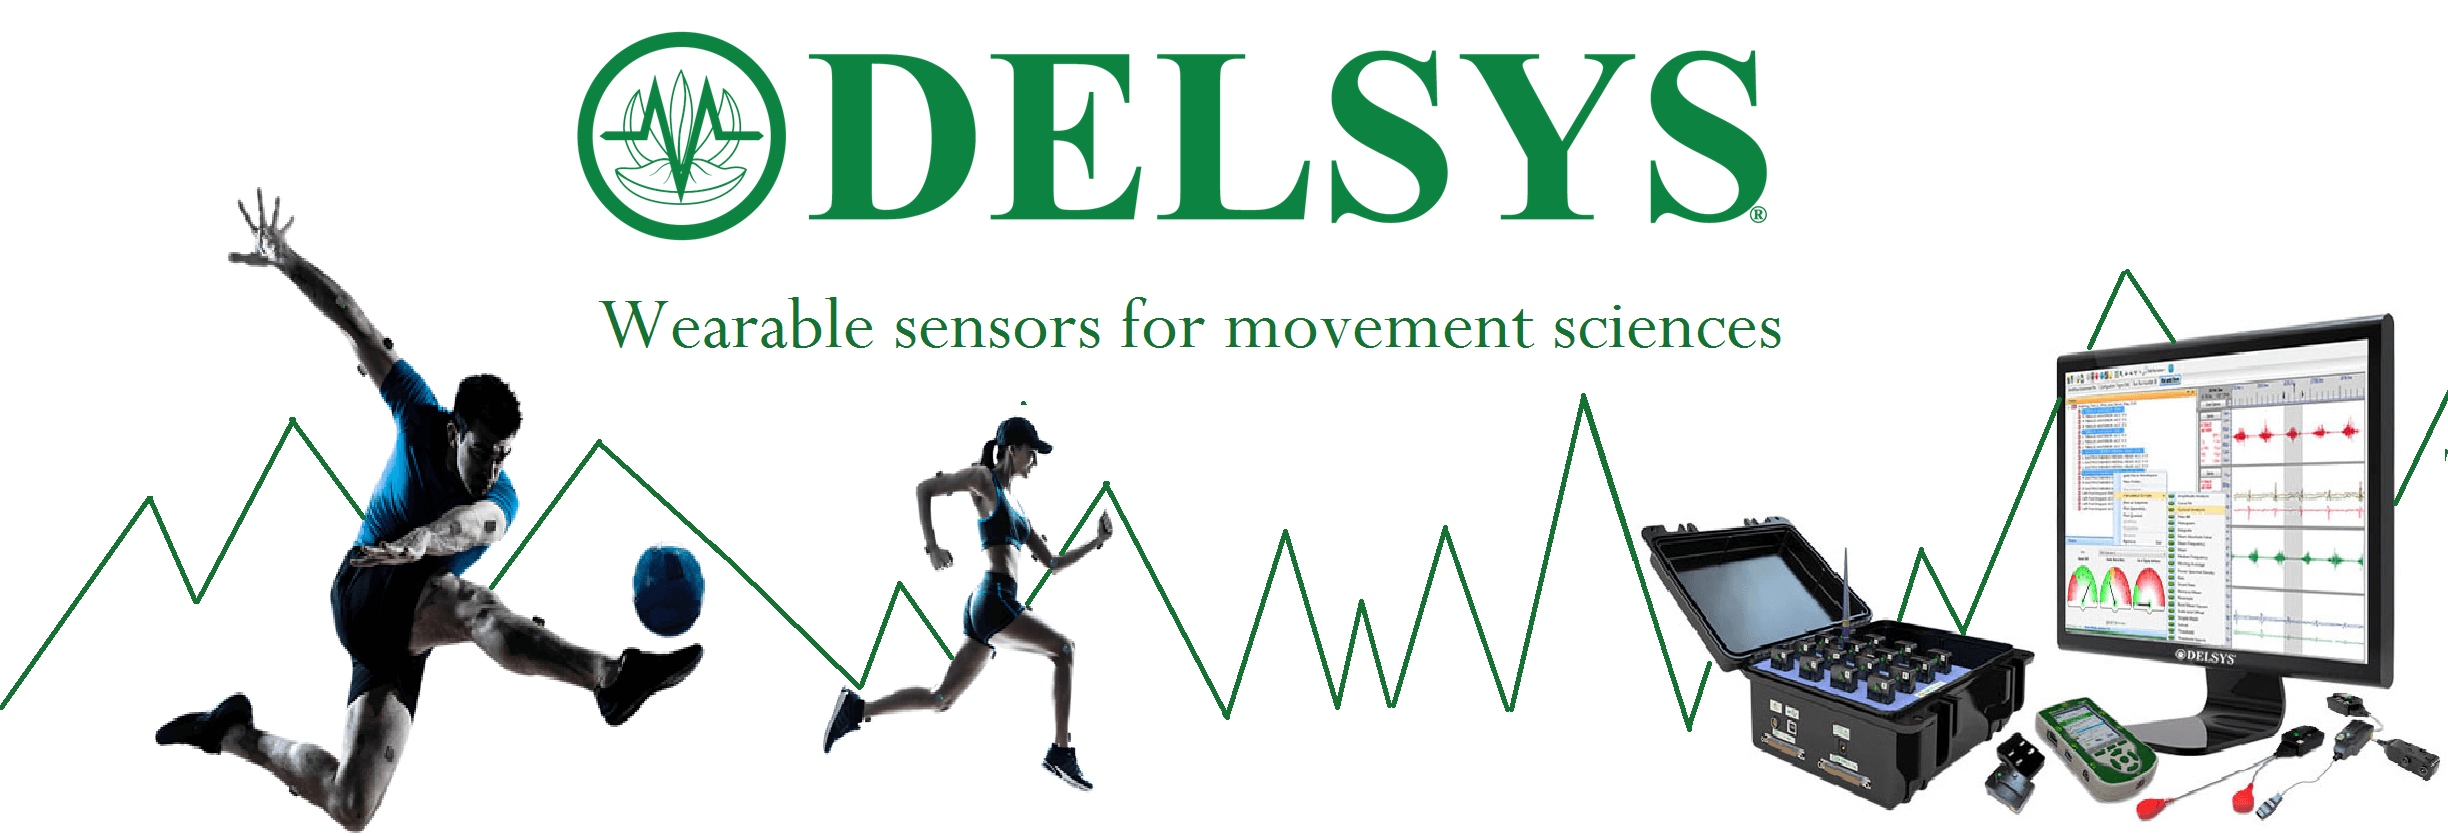 Delsys - Wearable sensors for movement sciences